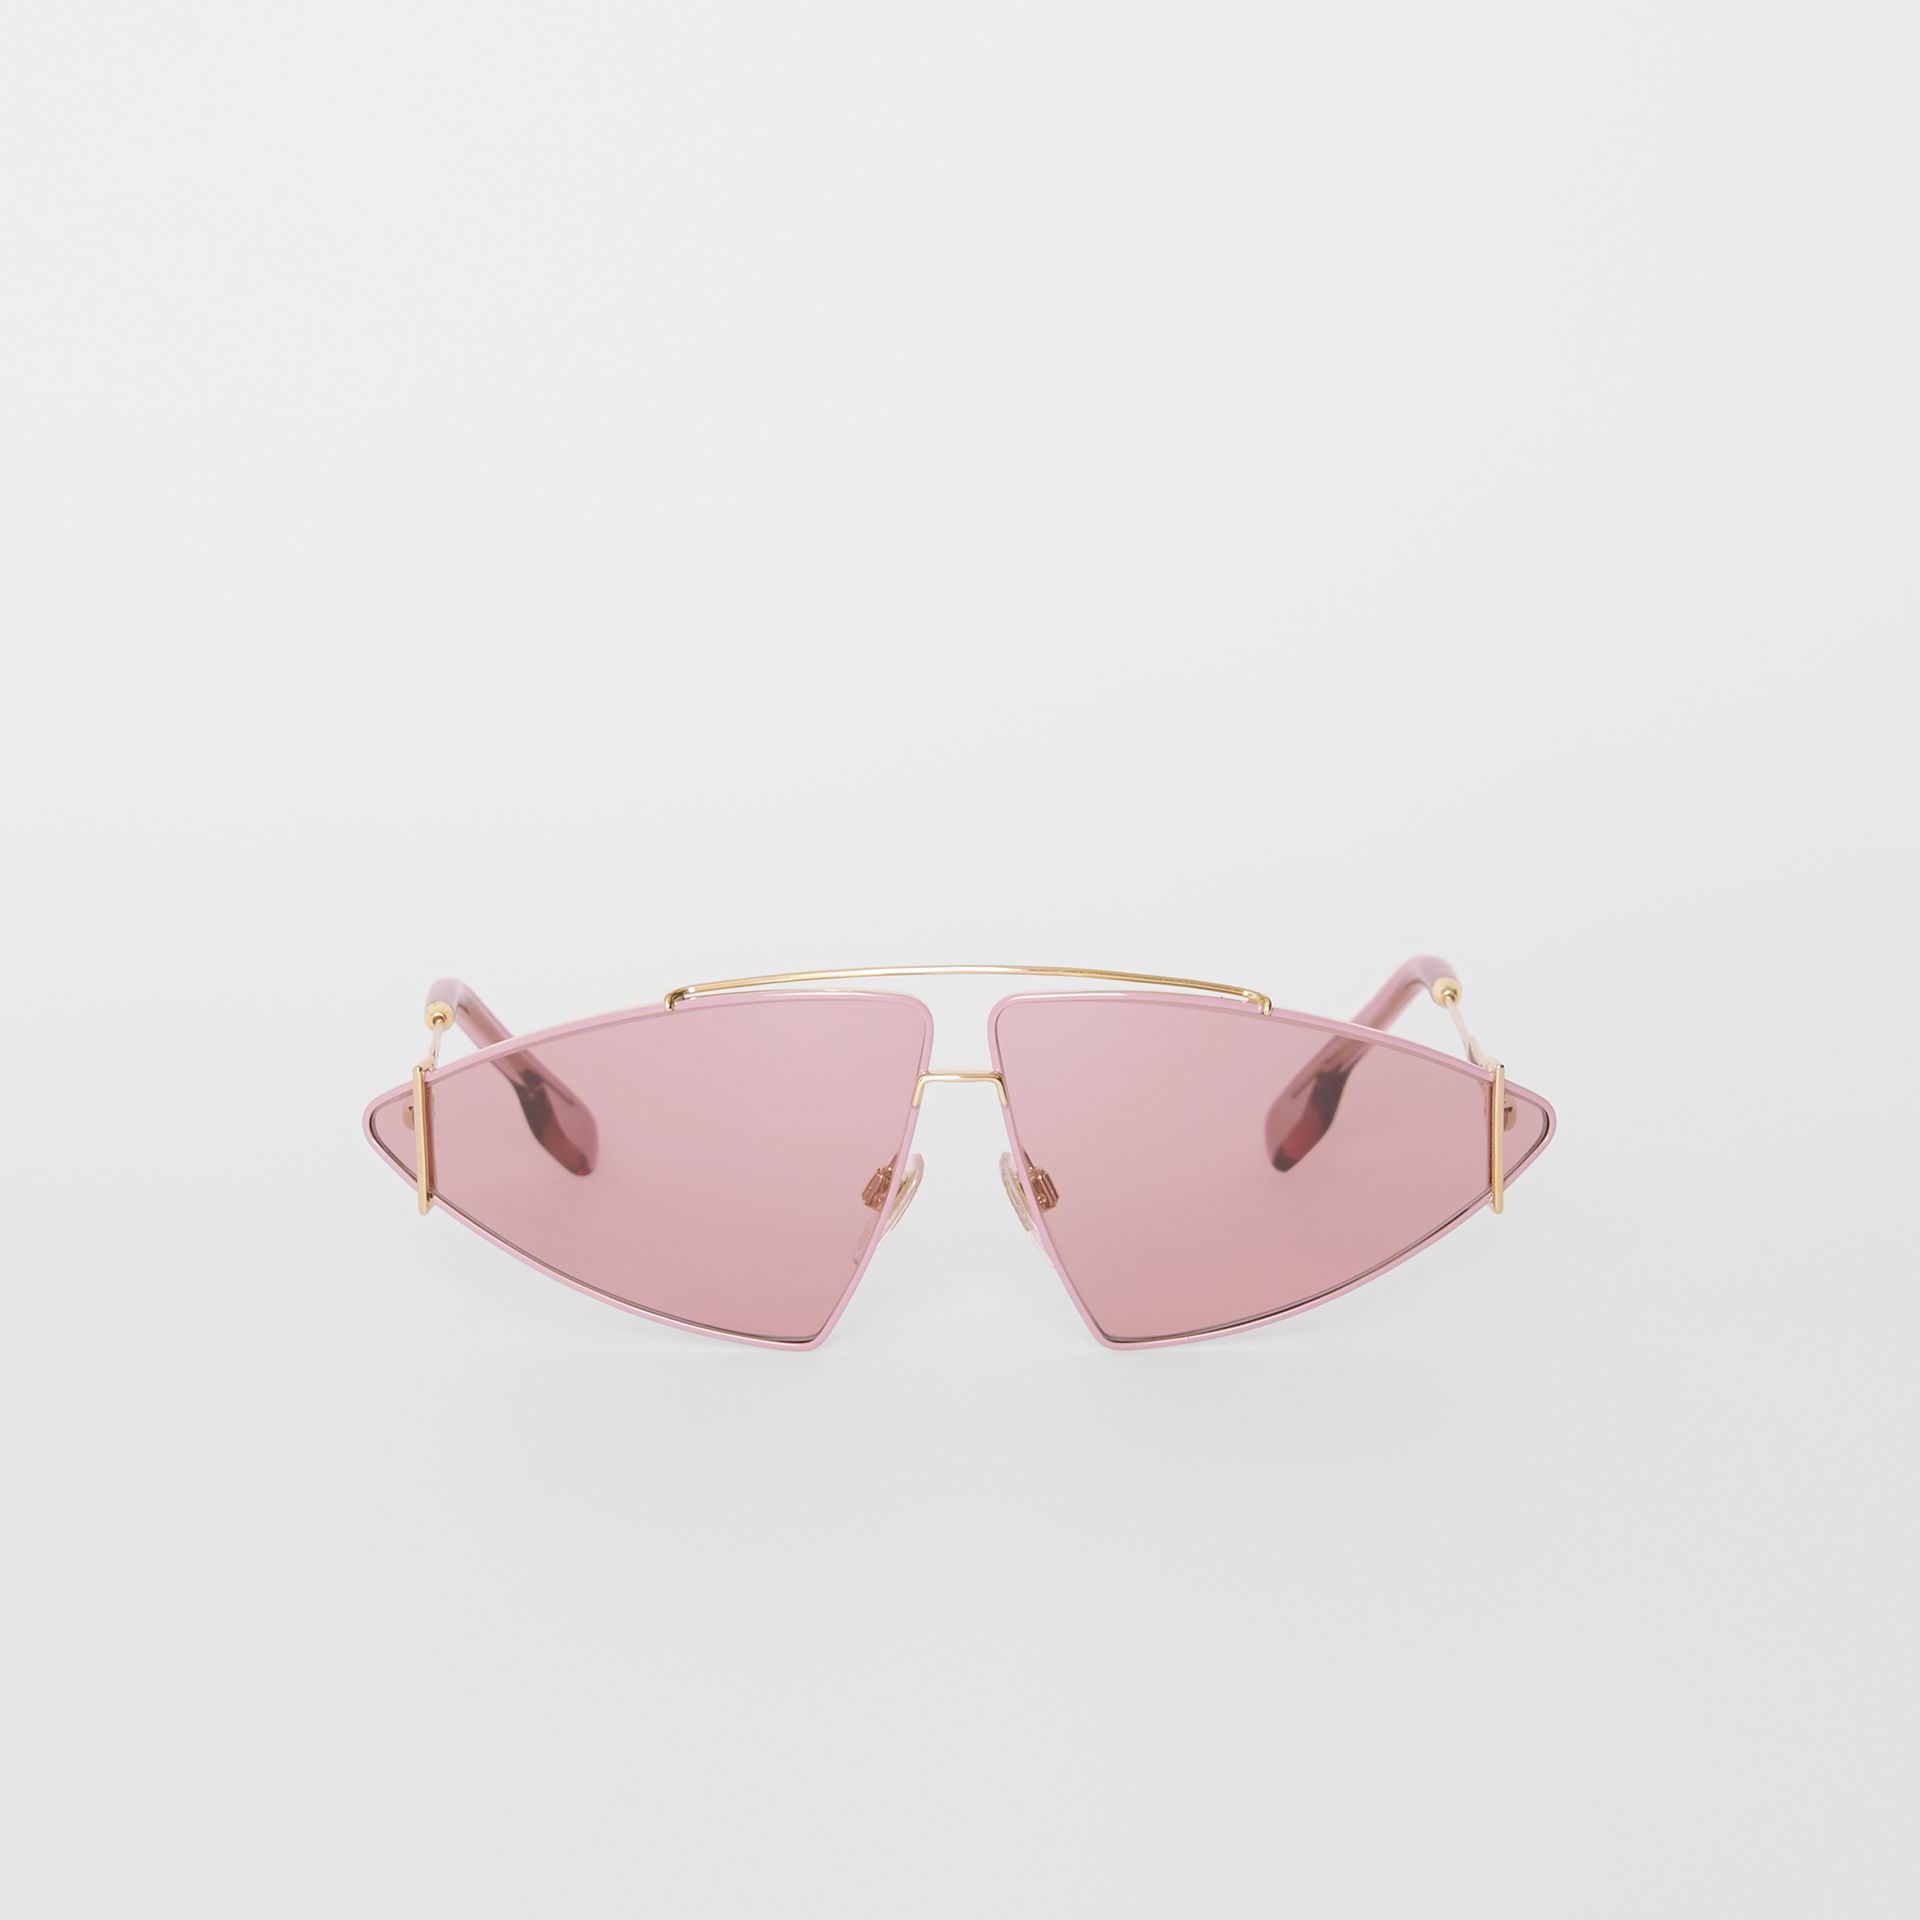 Gold-plated Triangular Frame Sunglasses in Blush Pink - Women | Burberry - gallery image 0